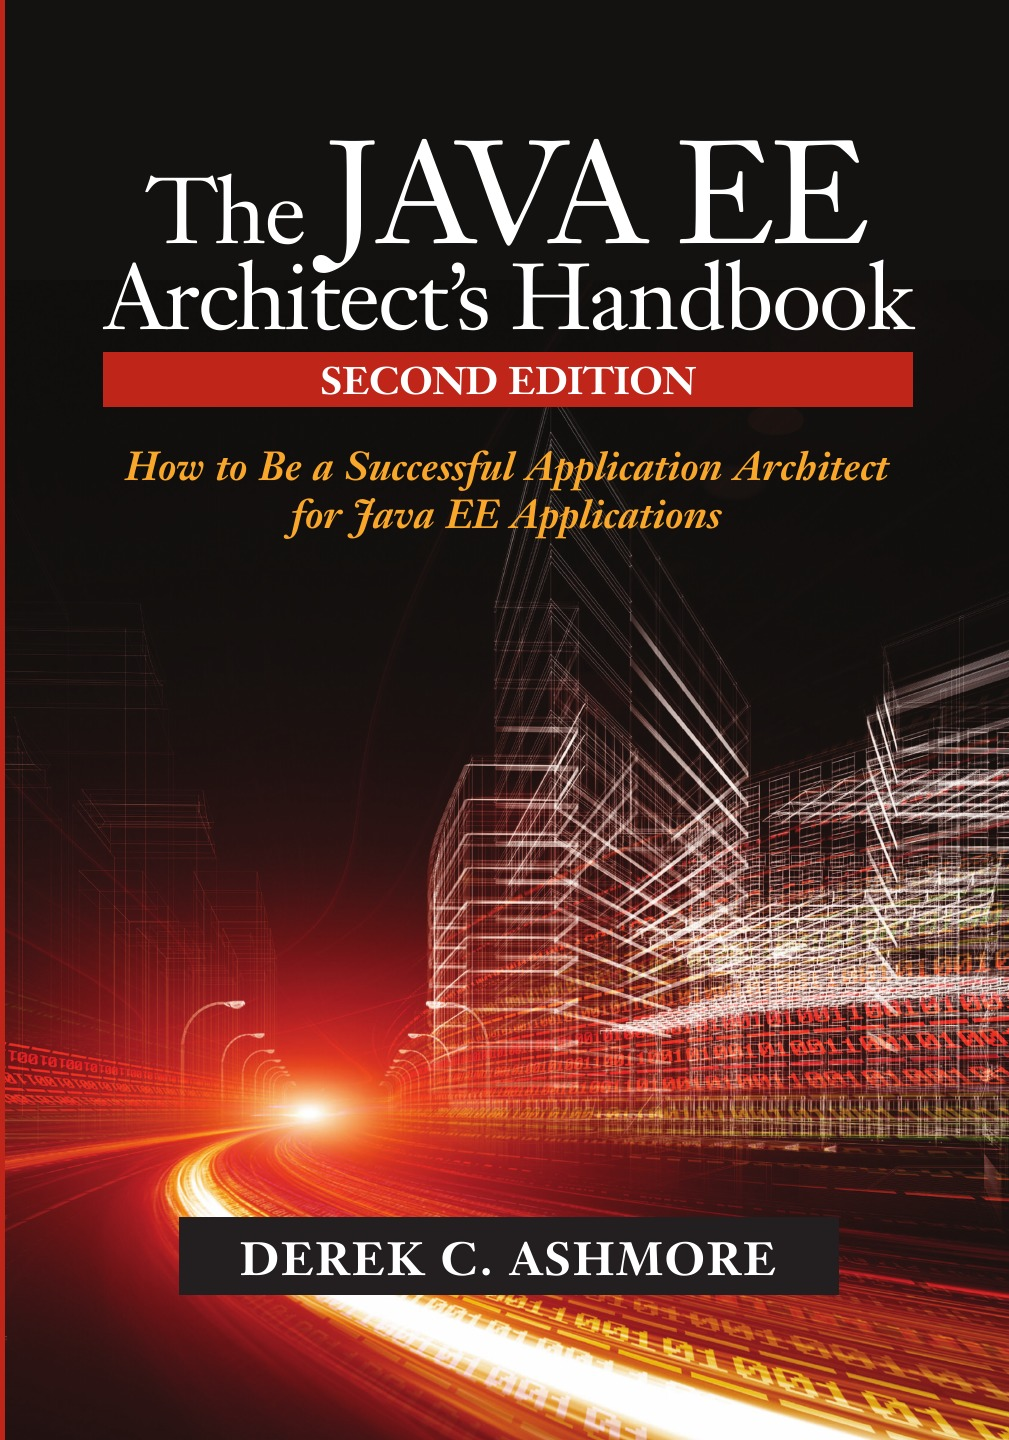 Derek C. Ashmore The Java Ee Architect.s Handbook. How to Be a Successful Application Architect for Java Ee Applications abreu cristiano nabucode internet addiction a handbook and guide to evaluation and treatment